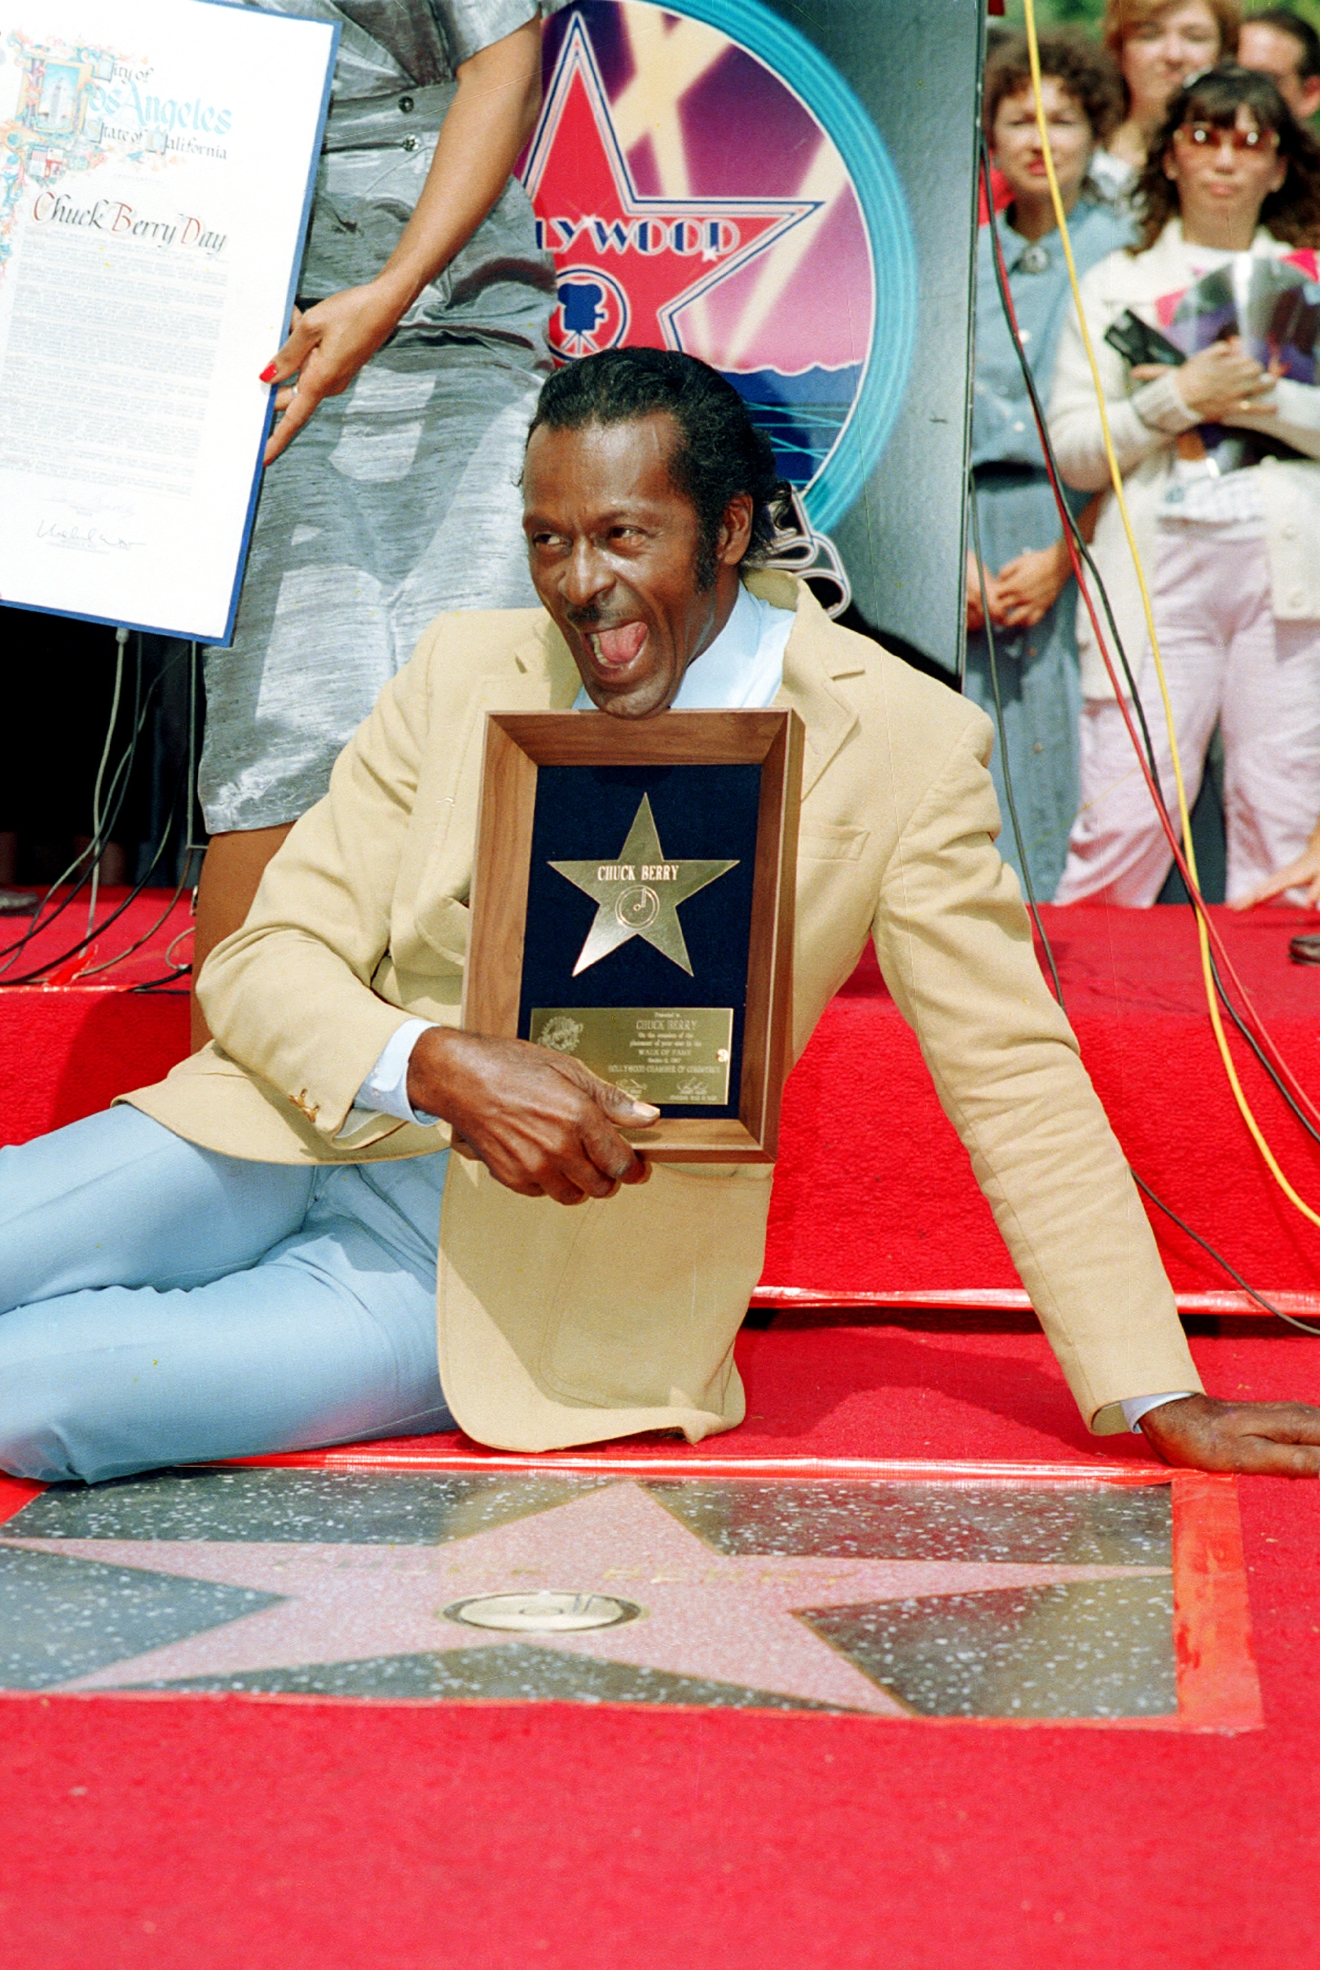 Rock and roll musician Chuck Berry laughs as he poses with his plaque after receiving the Hollywood Walk of Fame star in Hollywood, Ca., Oct. 8, 1987.  Berry received the 1,857th star on the boulevard.  (AP Photo/Mark Terrill)